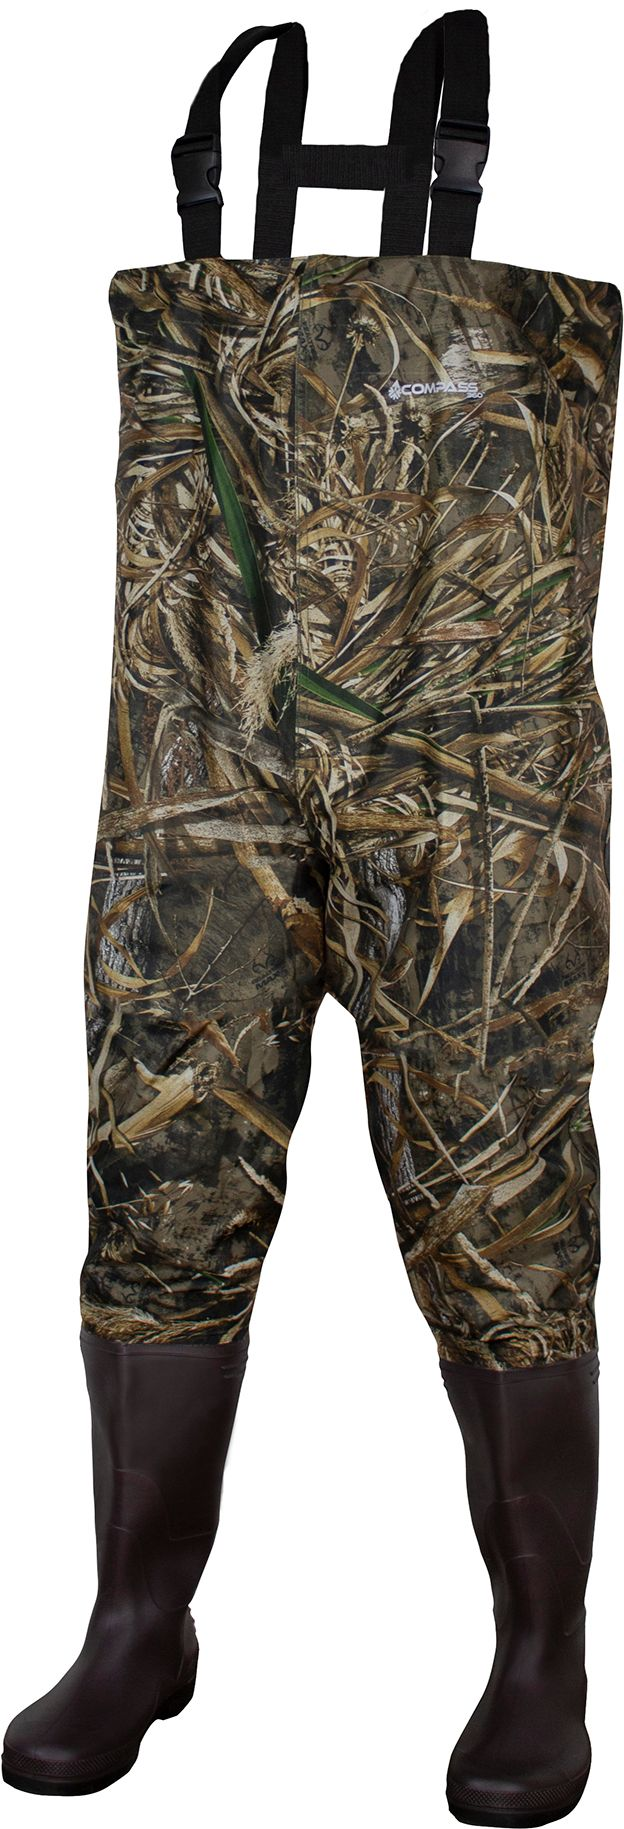 Compass 360 WINDWARD Camo PVC Bootfoot Chest Waders, Men's, Multi